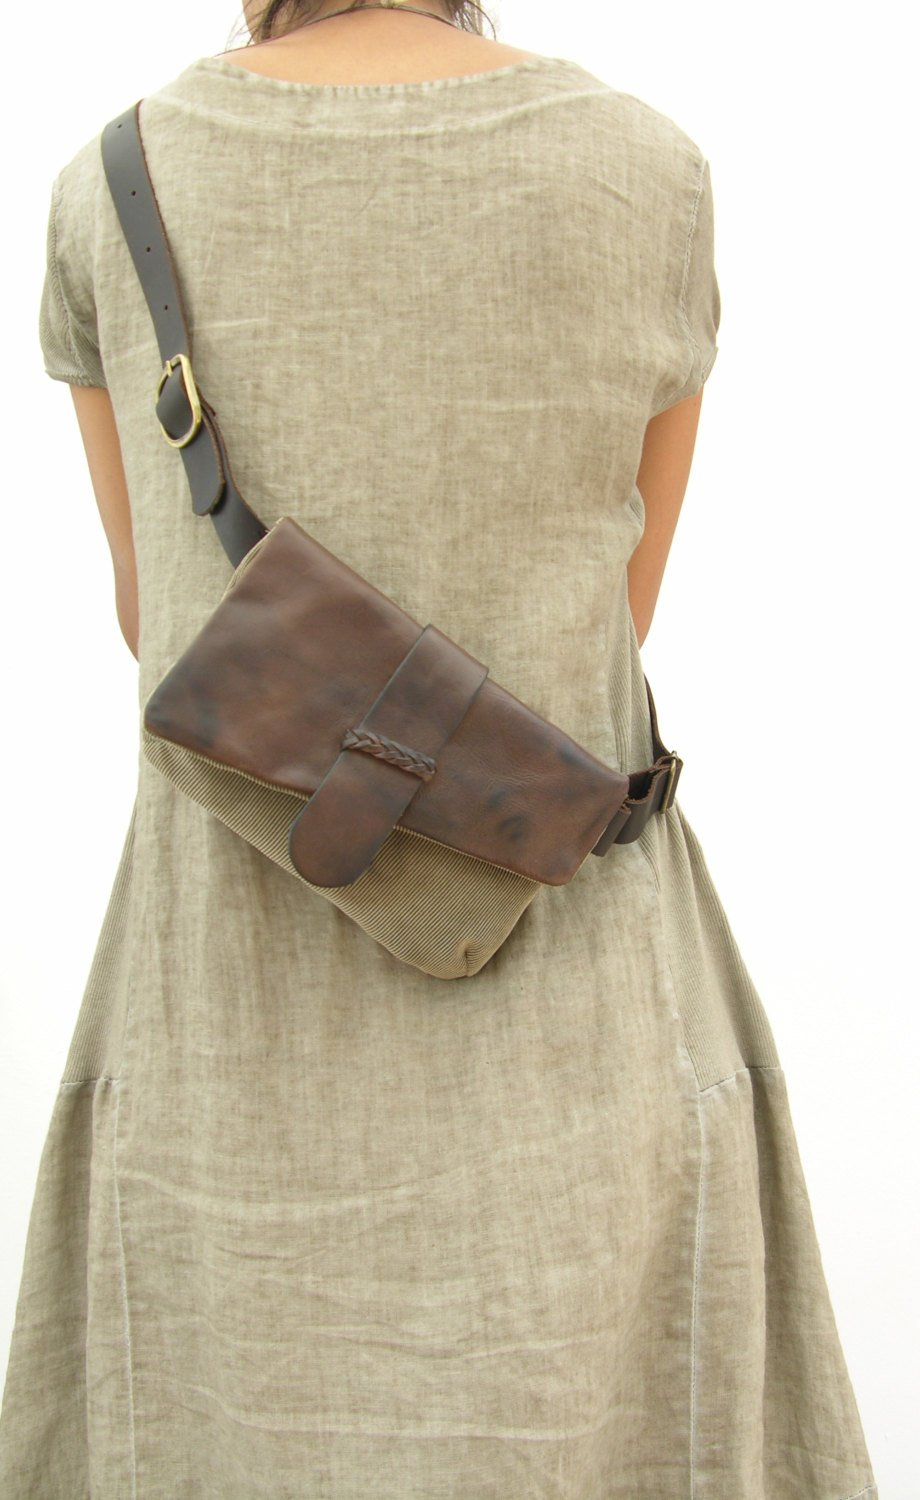 Leather and canvas Hip Bag, Bum Bag, Fanny Pack, Unique Design, Soft Leather, Braided Leather, Markets, Festivals